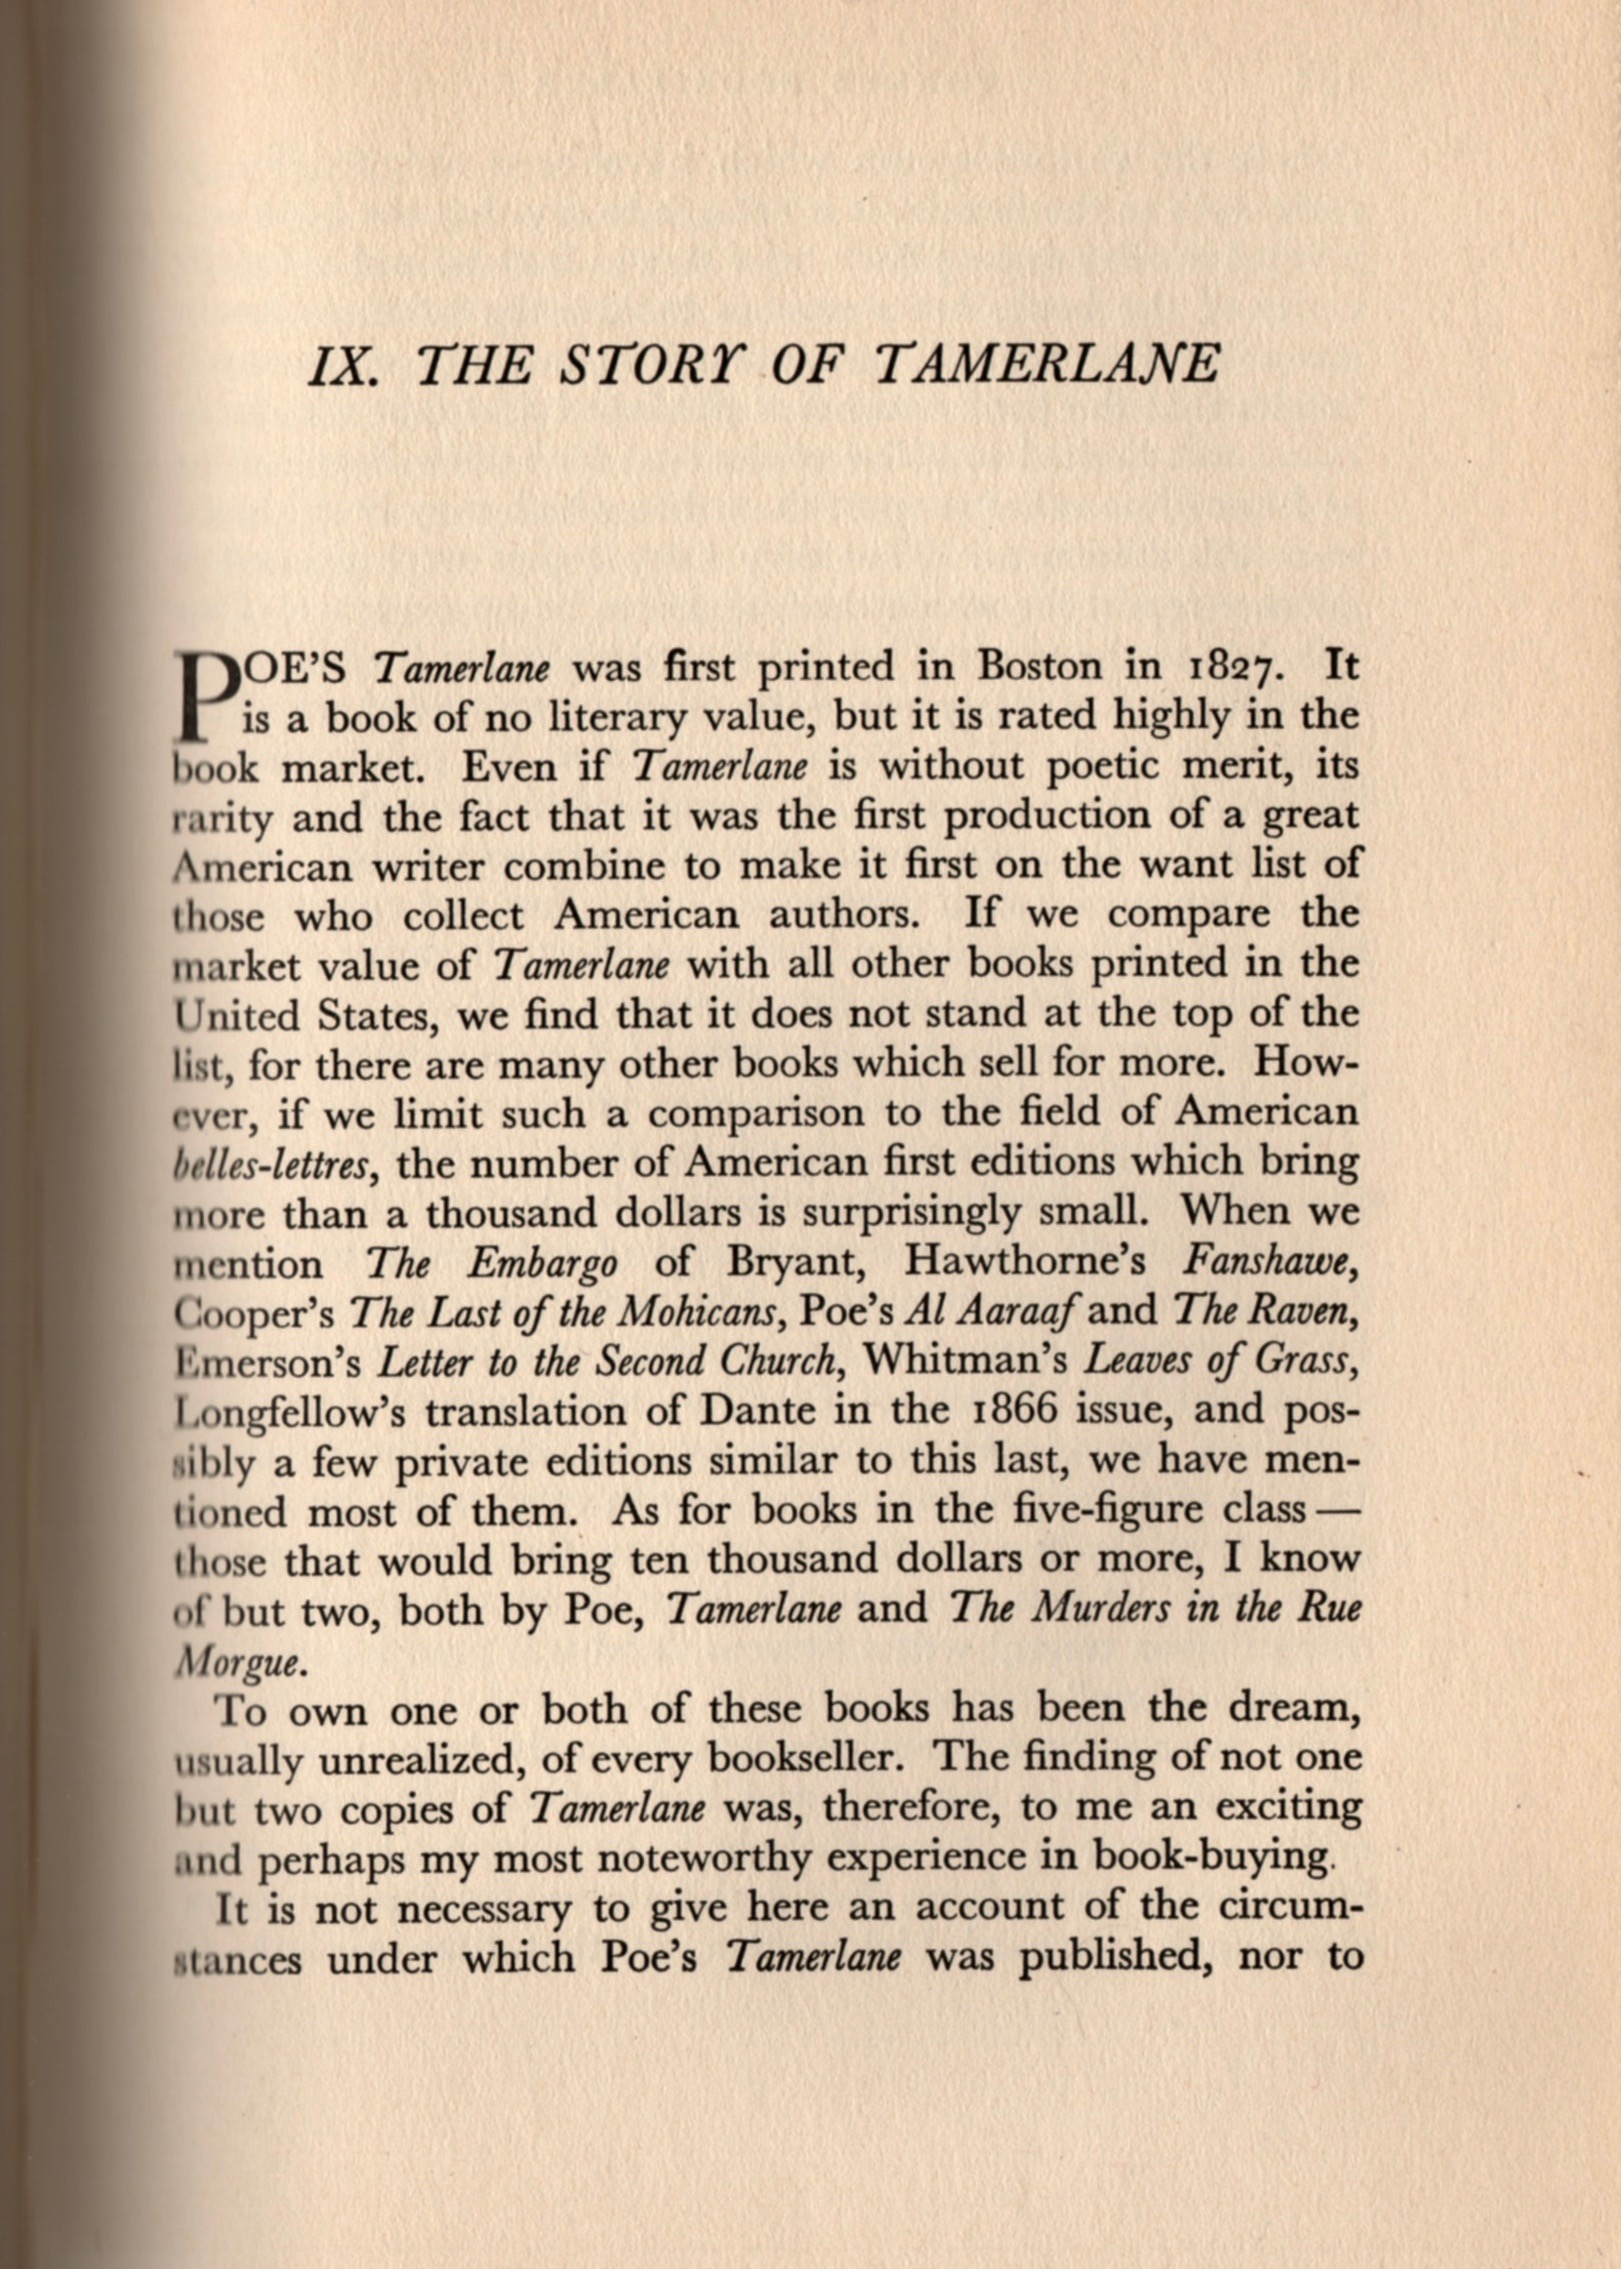 Goodspeed's chapter on finding a Tamerlane as a result of Starrett's article from his book, Yankee Bookseller.